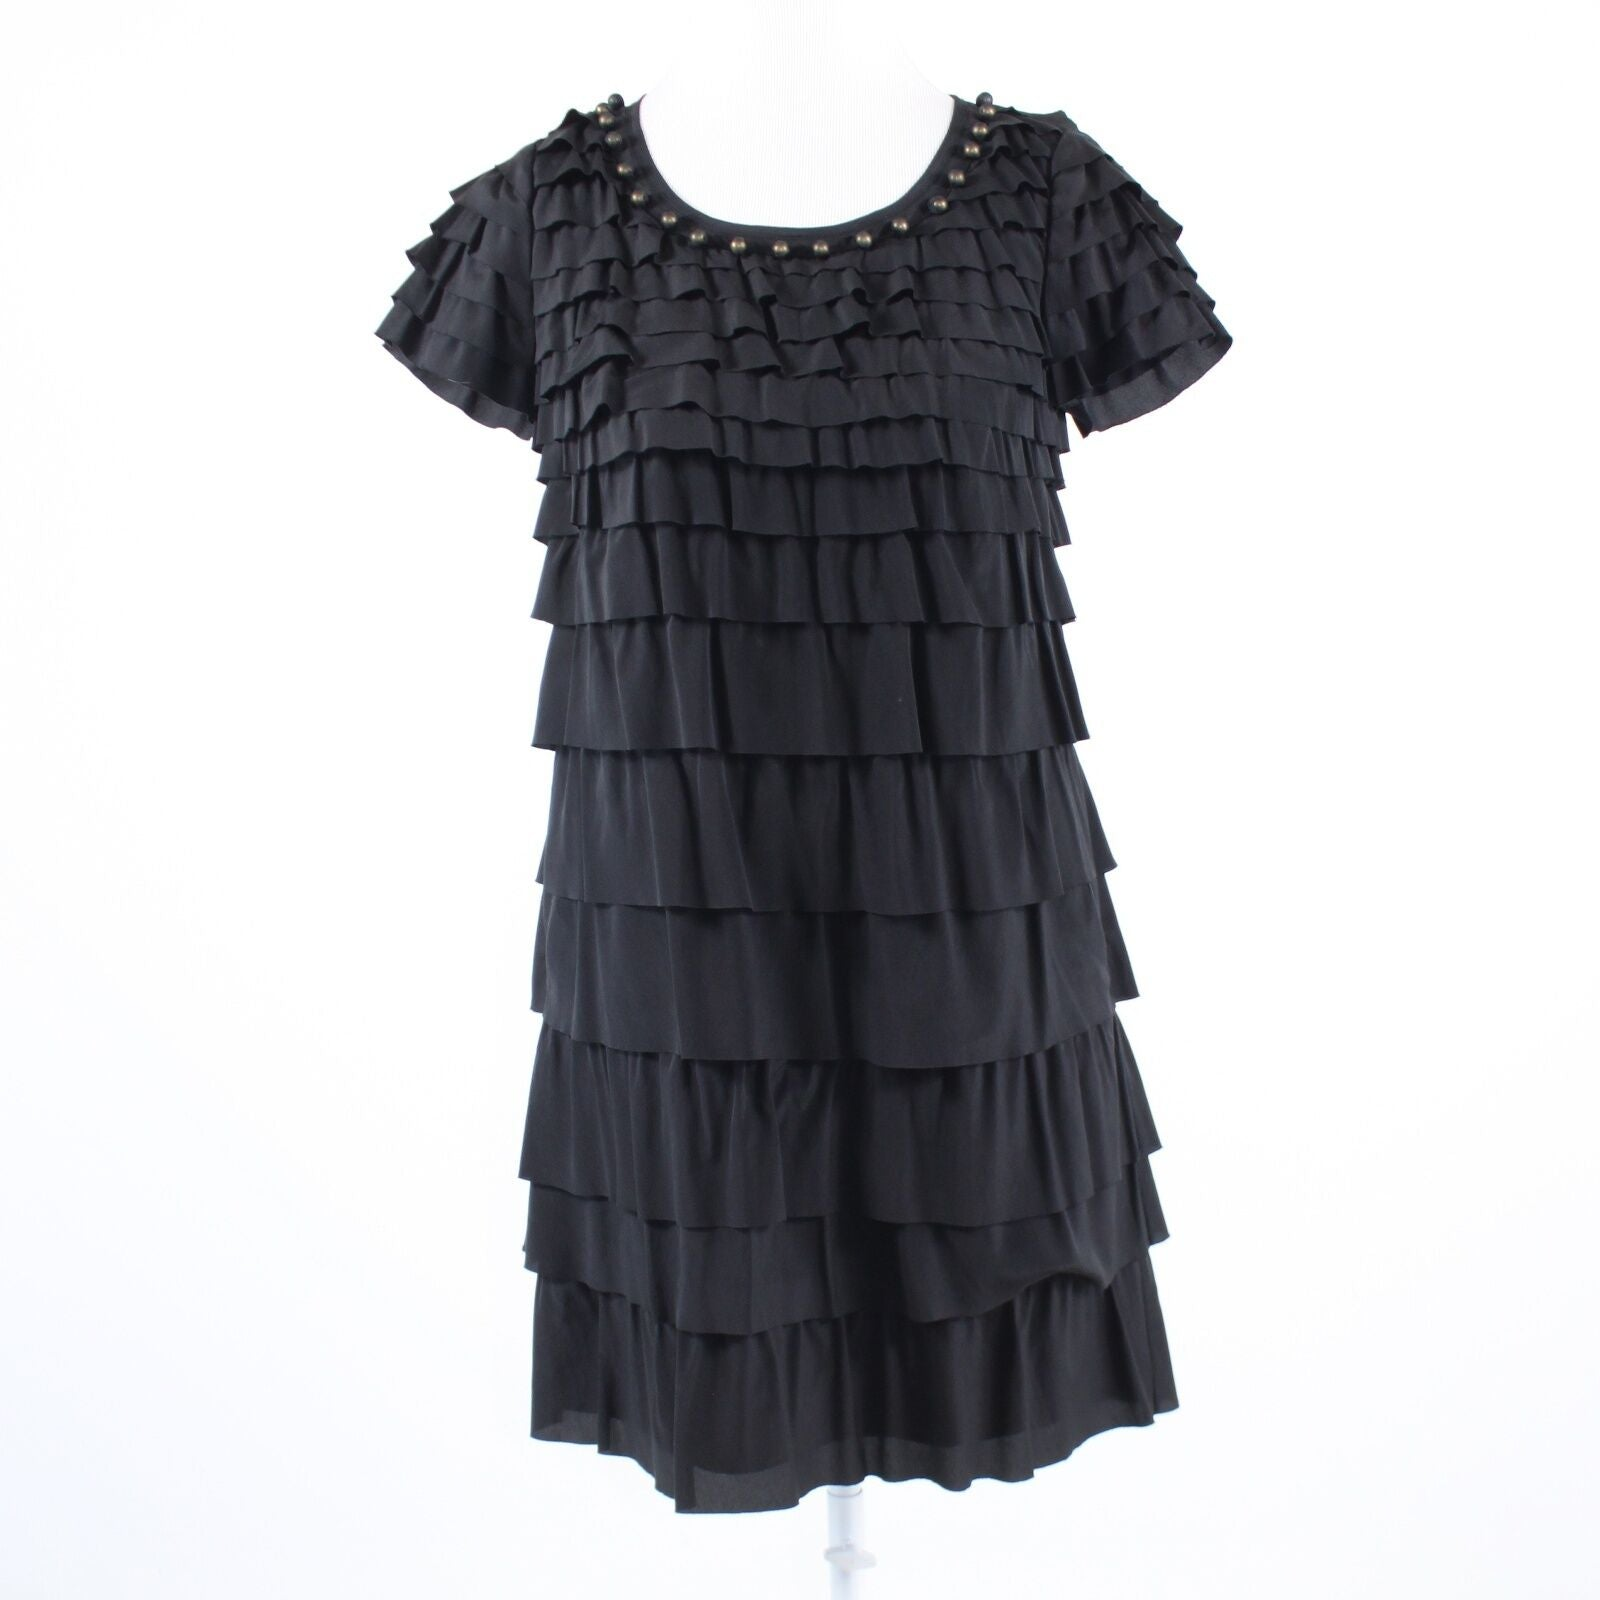 Black silk blend DKNY NEW YORK beaded neckline cap sleeve tiered dress 2